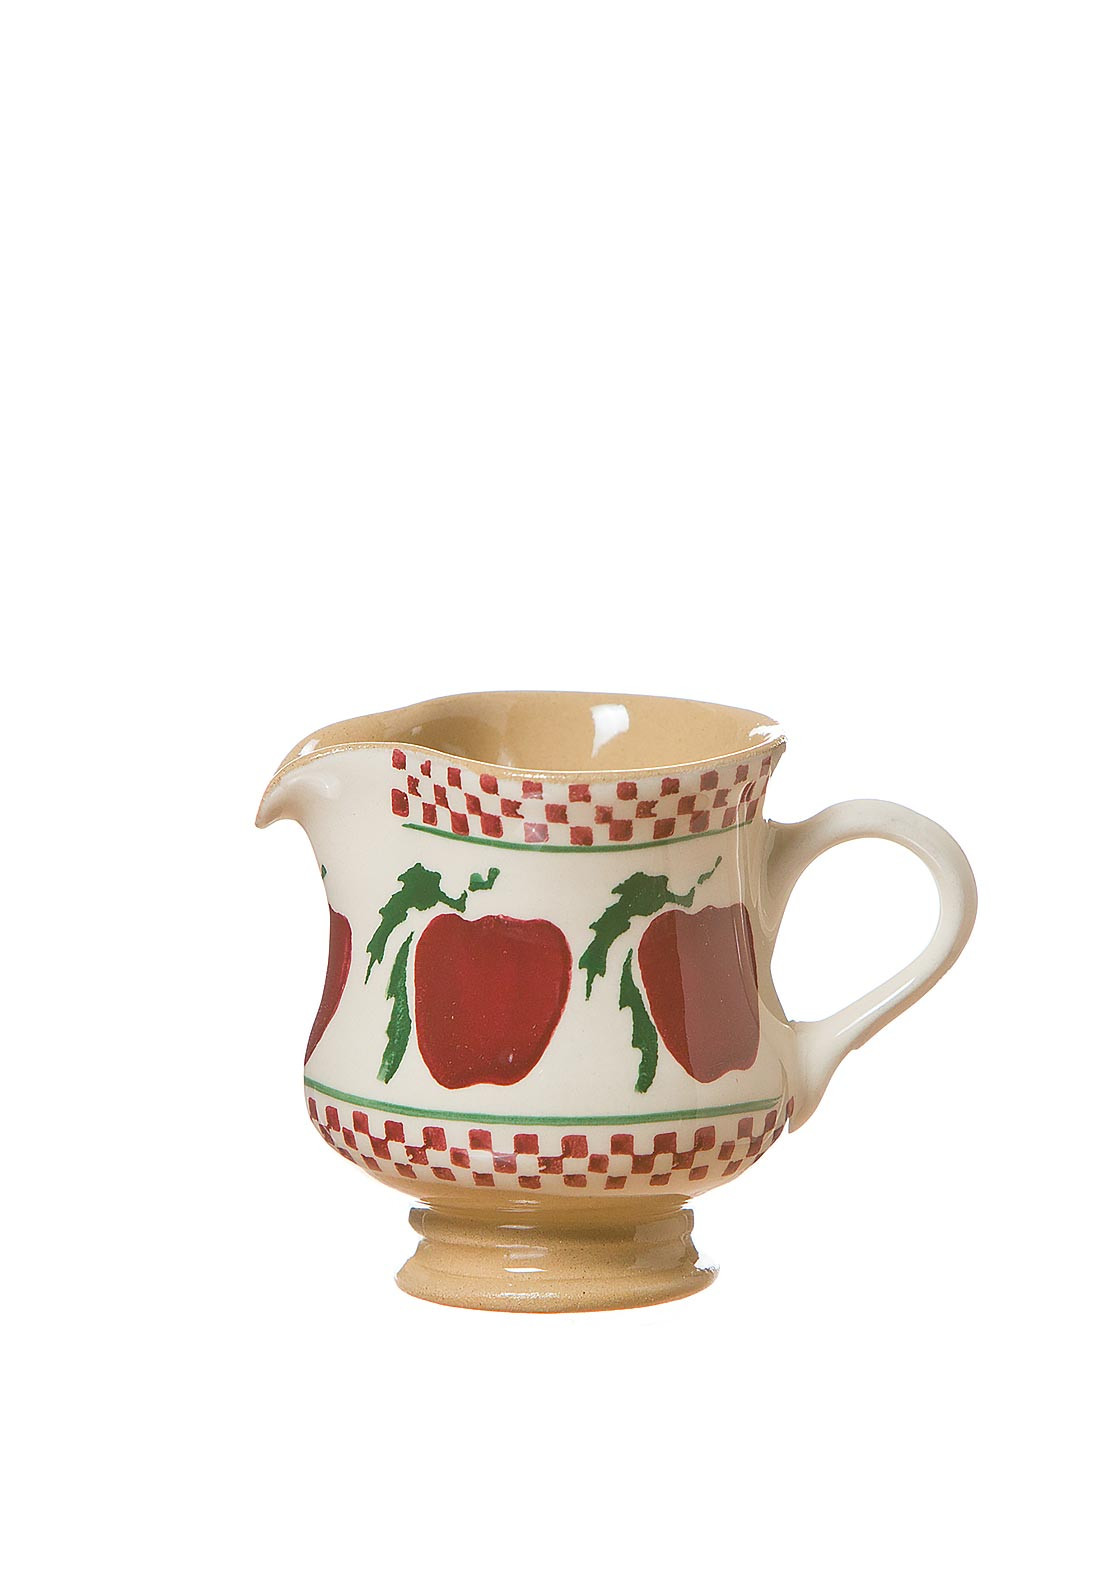 Nicholas Mosse Pottery Apple Jug, Small